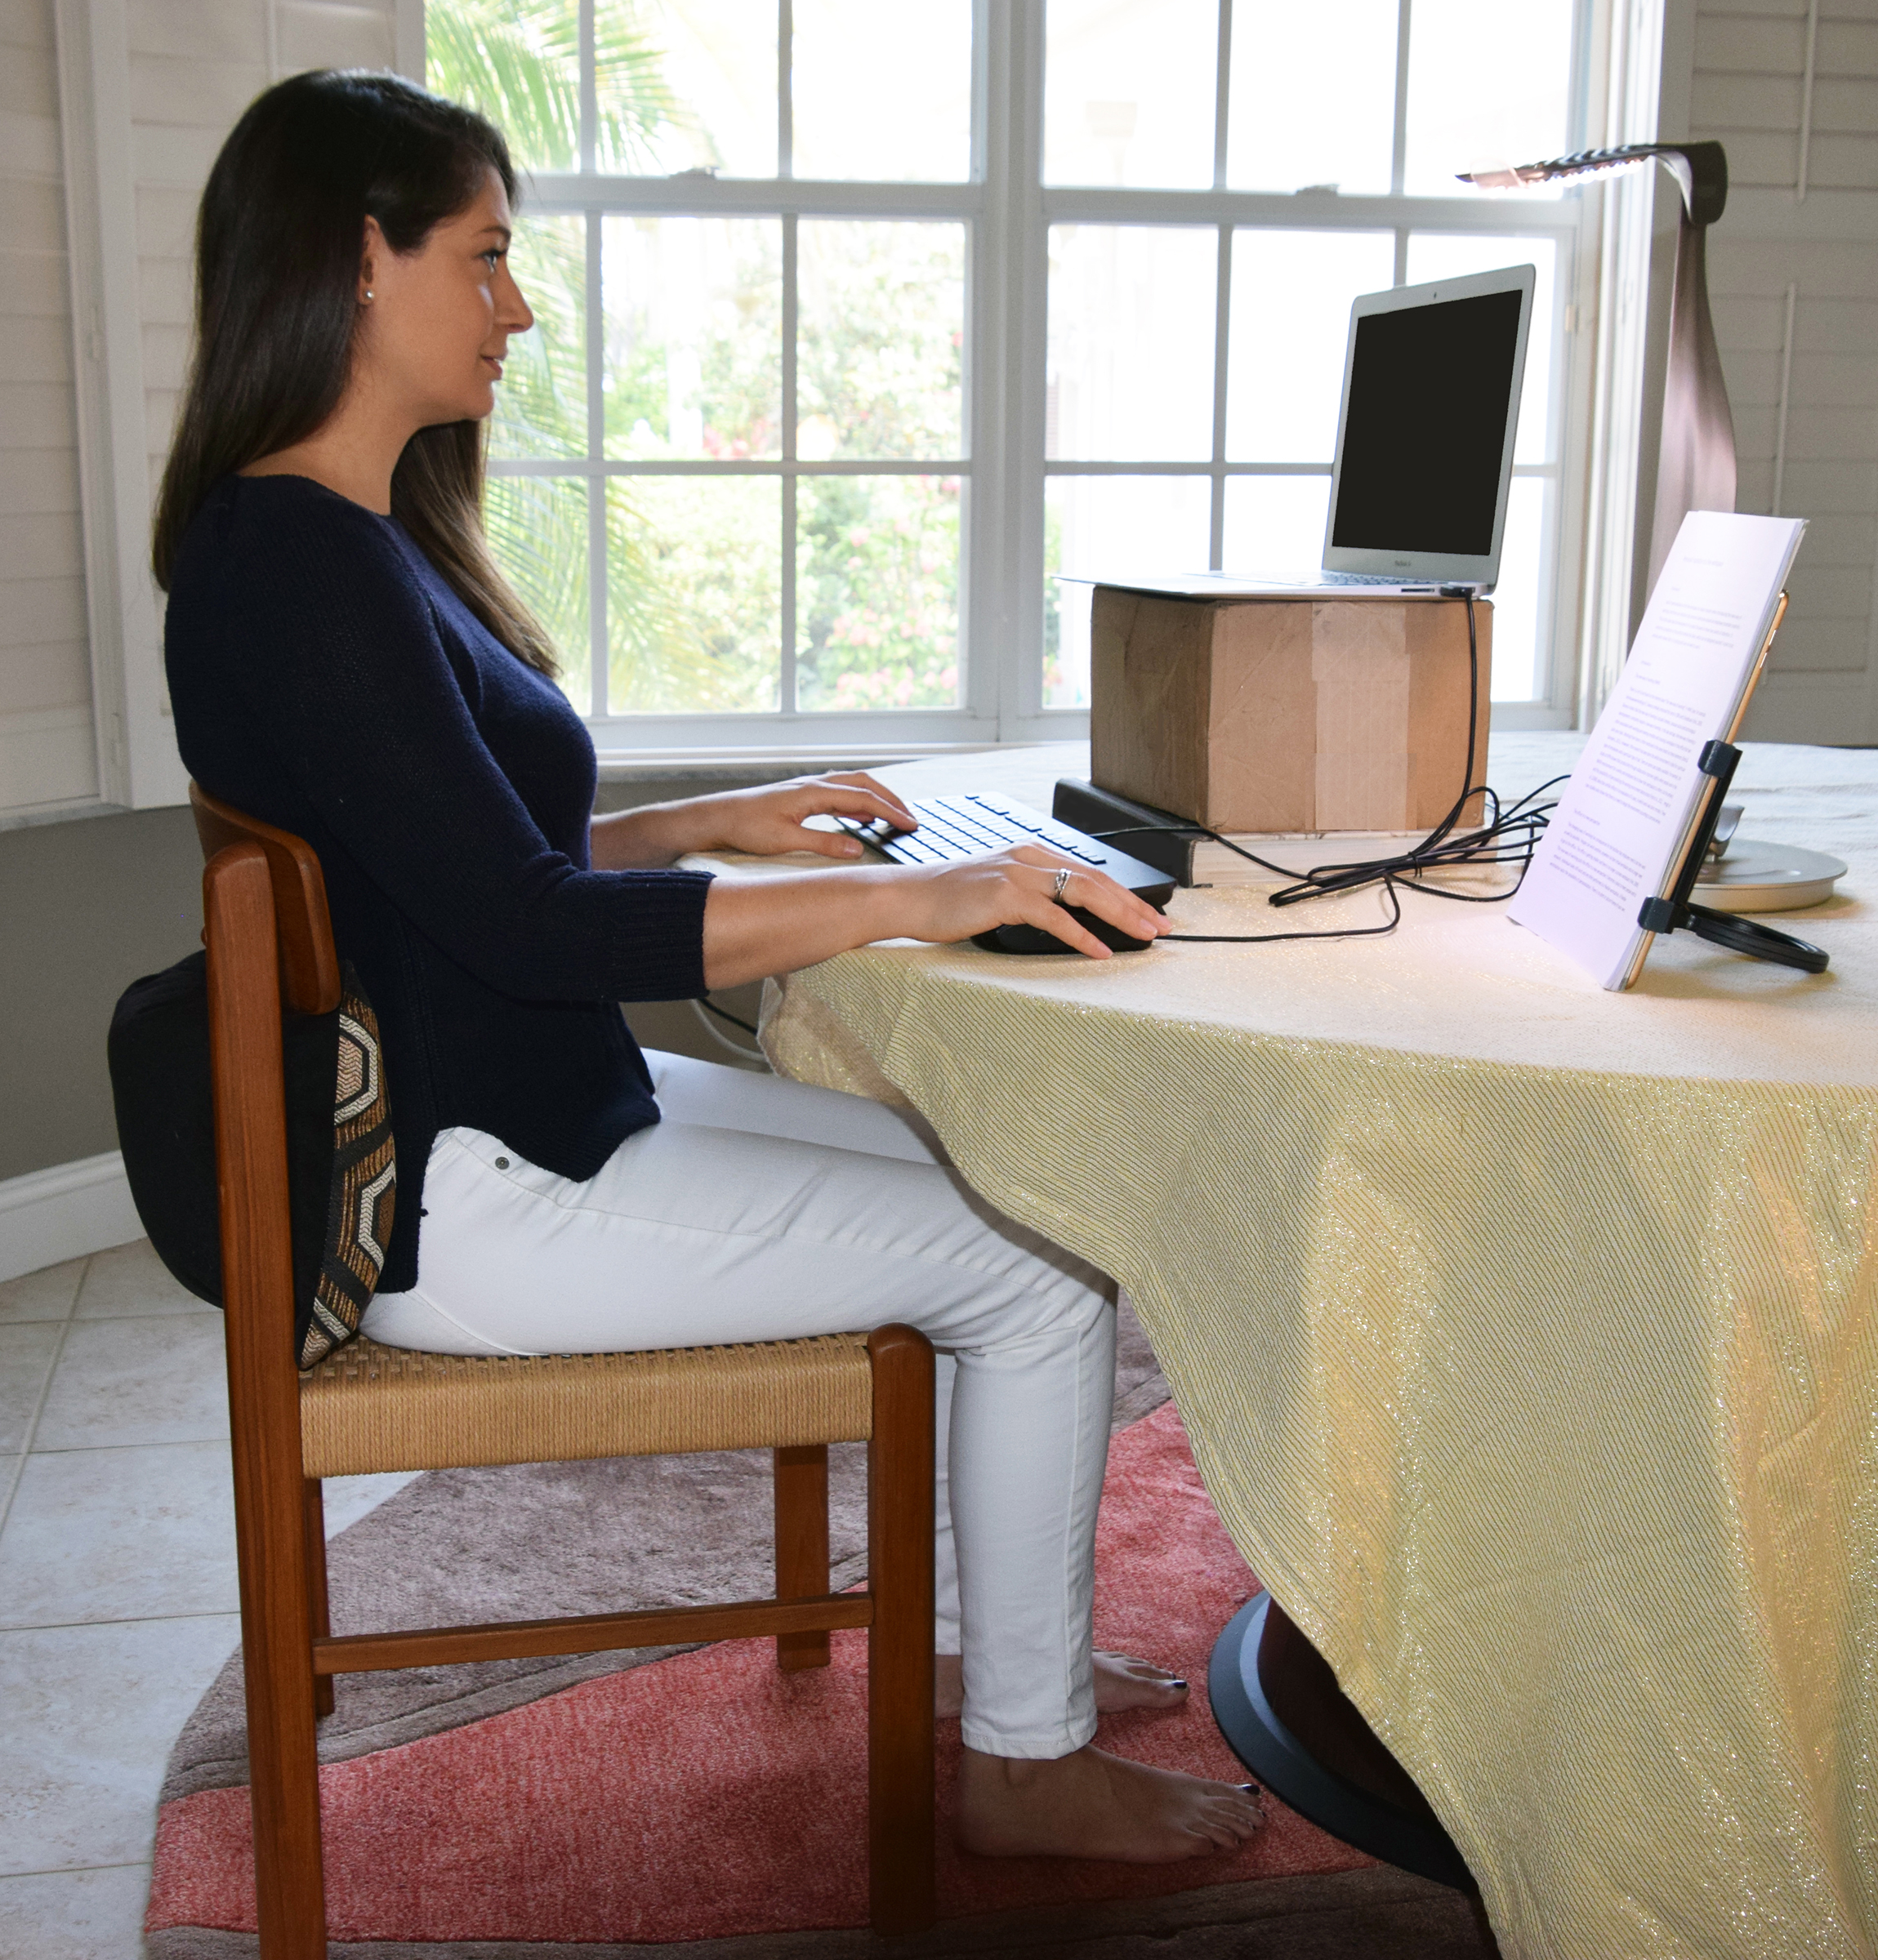 The author's daughter-in-law demonstrates optimal ergonomic posture.